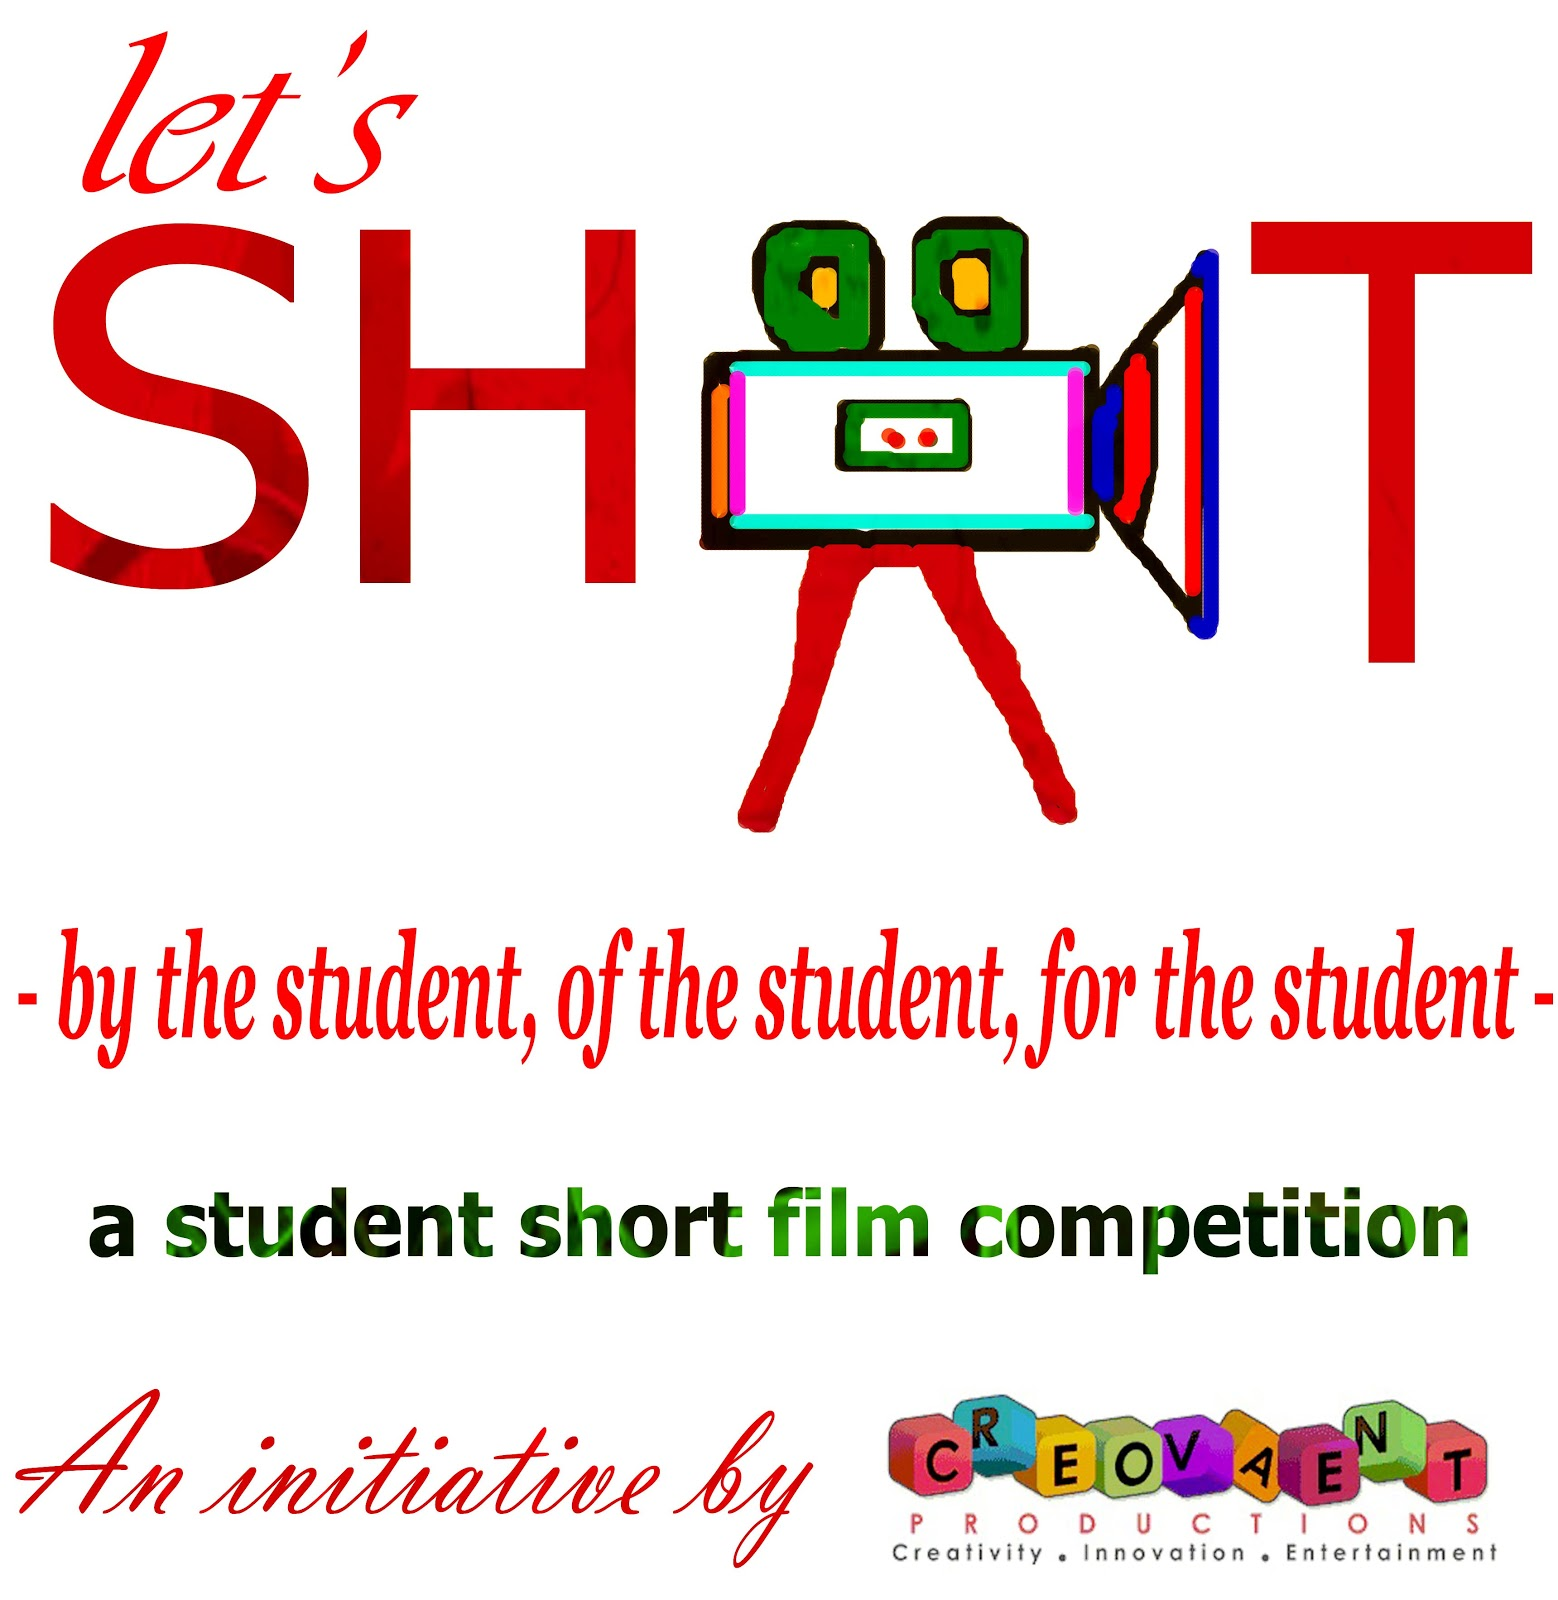 CREOVAENT PRODUCTION: LET's SHOOT - a student short film ...